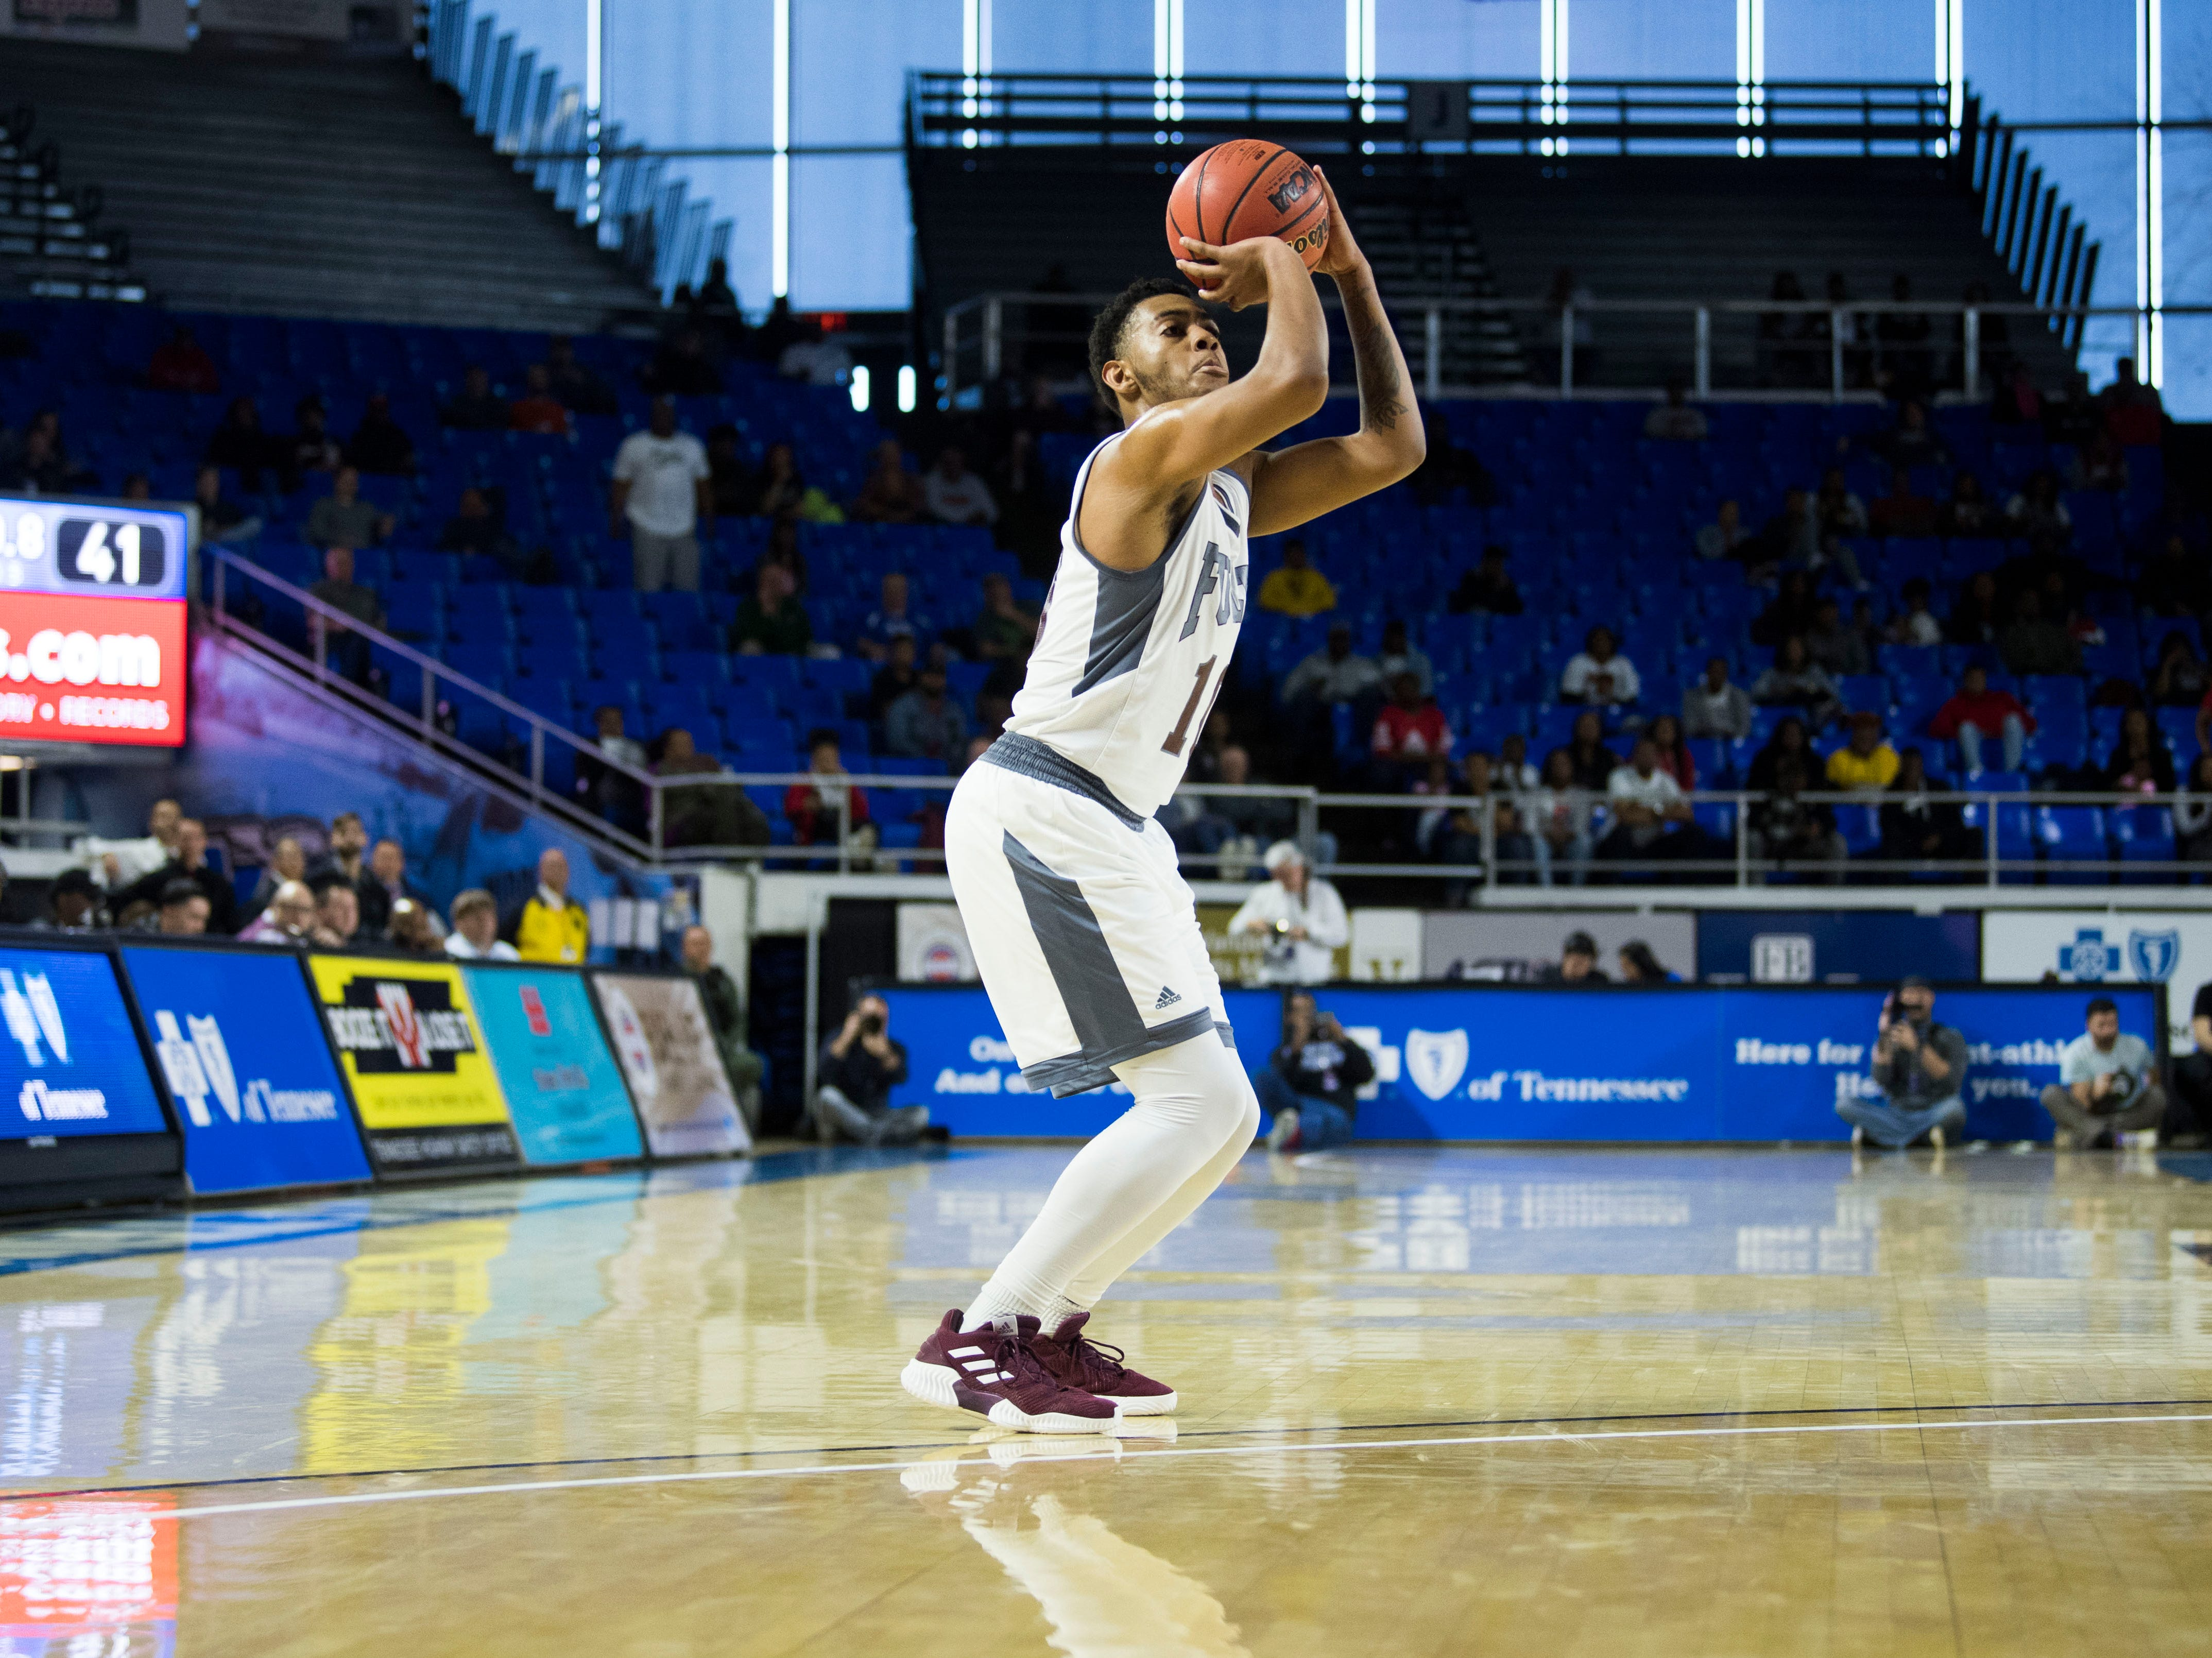 Fulton's Trey West (10) takes a three-point shot during a TSSAA AA state championship game between Wooddale and Fulton at the Murphy Center in Murfreesboro, Saturday, March 16, 2019.